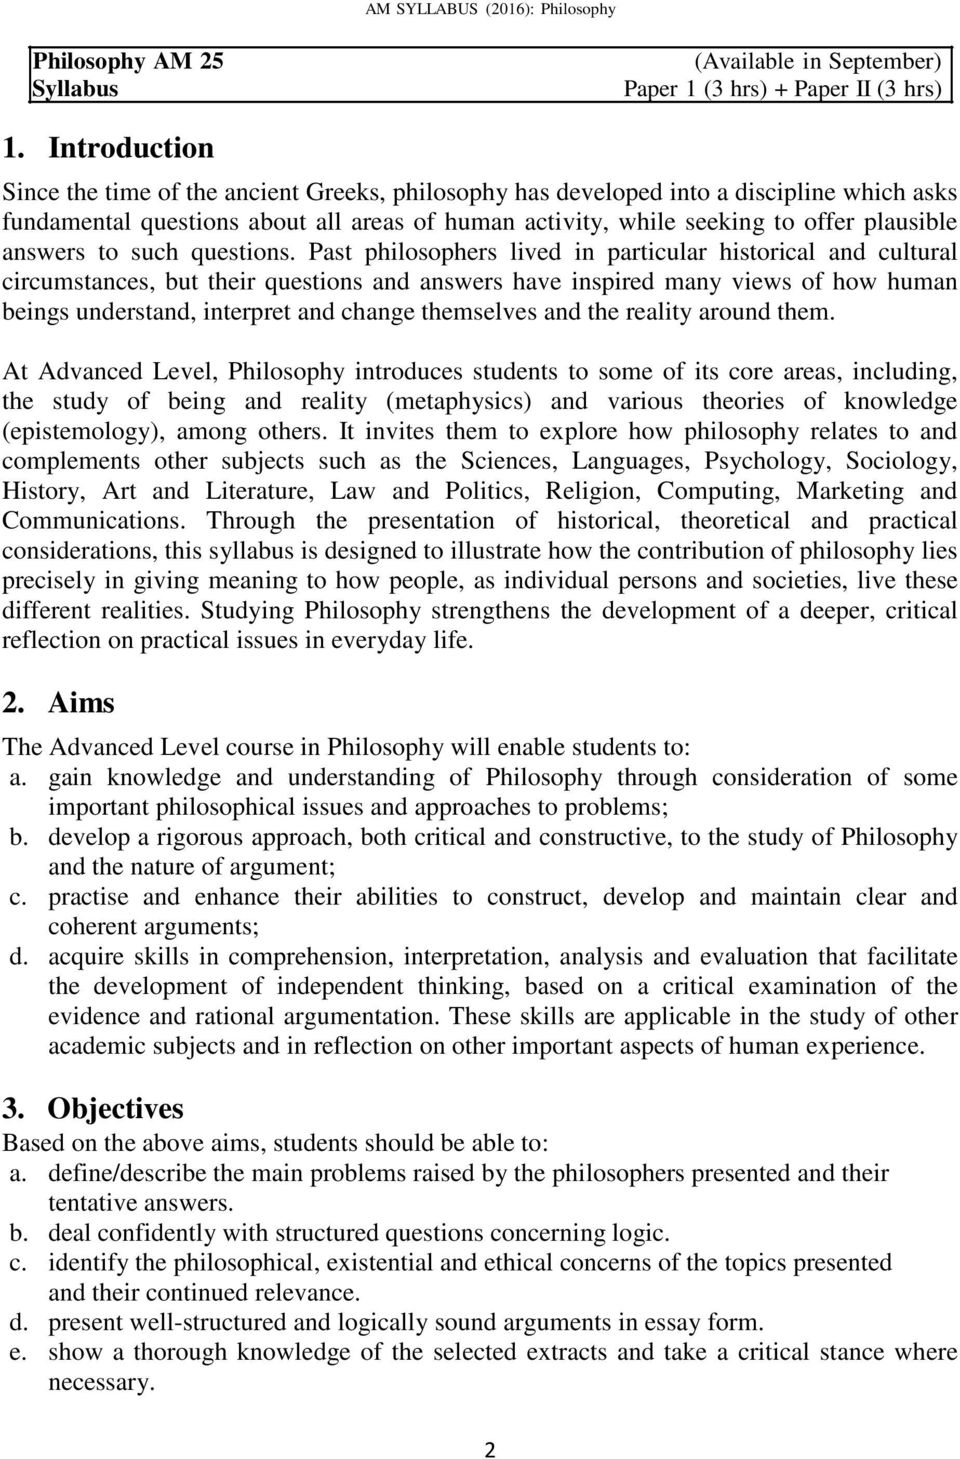 philosophy essay papers Students often find philosophy papers difficult to write since the expectations are very different from those in other disciplines, even from those of other disciplines in the humanities.